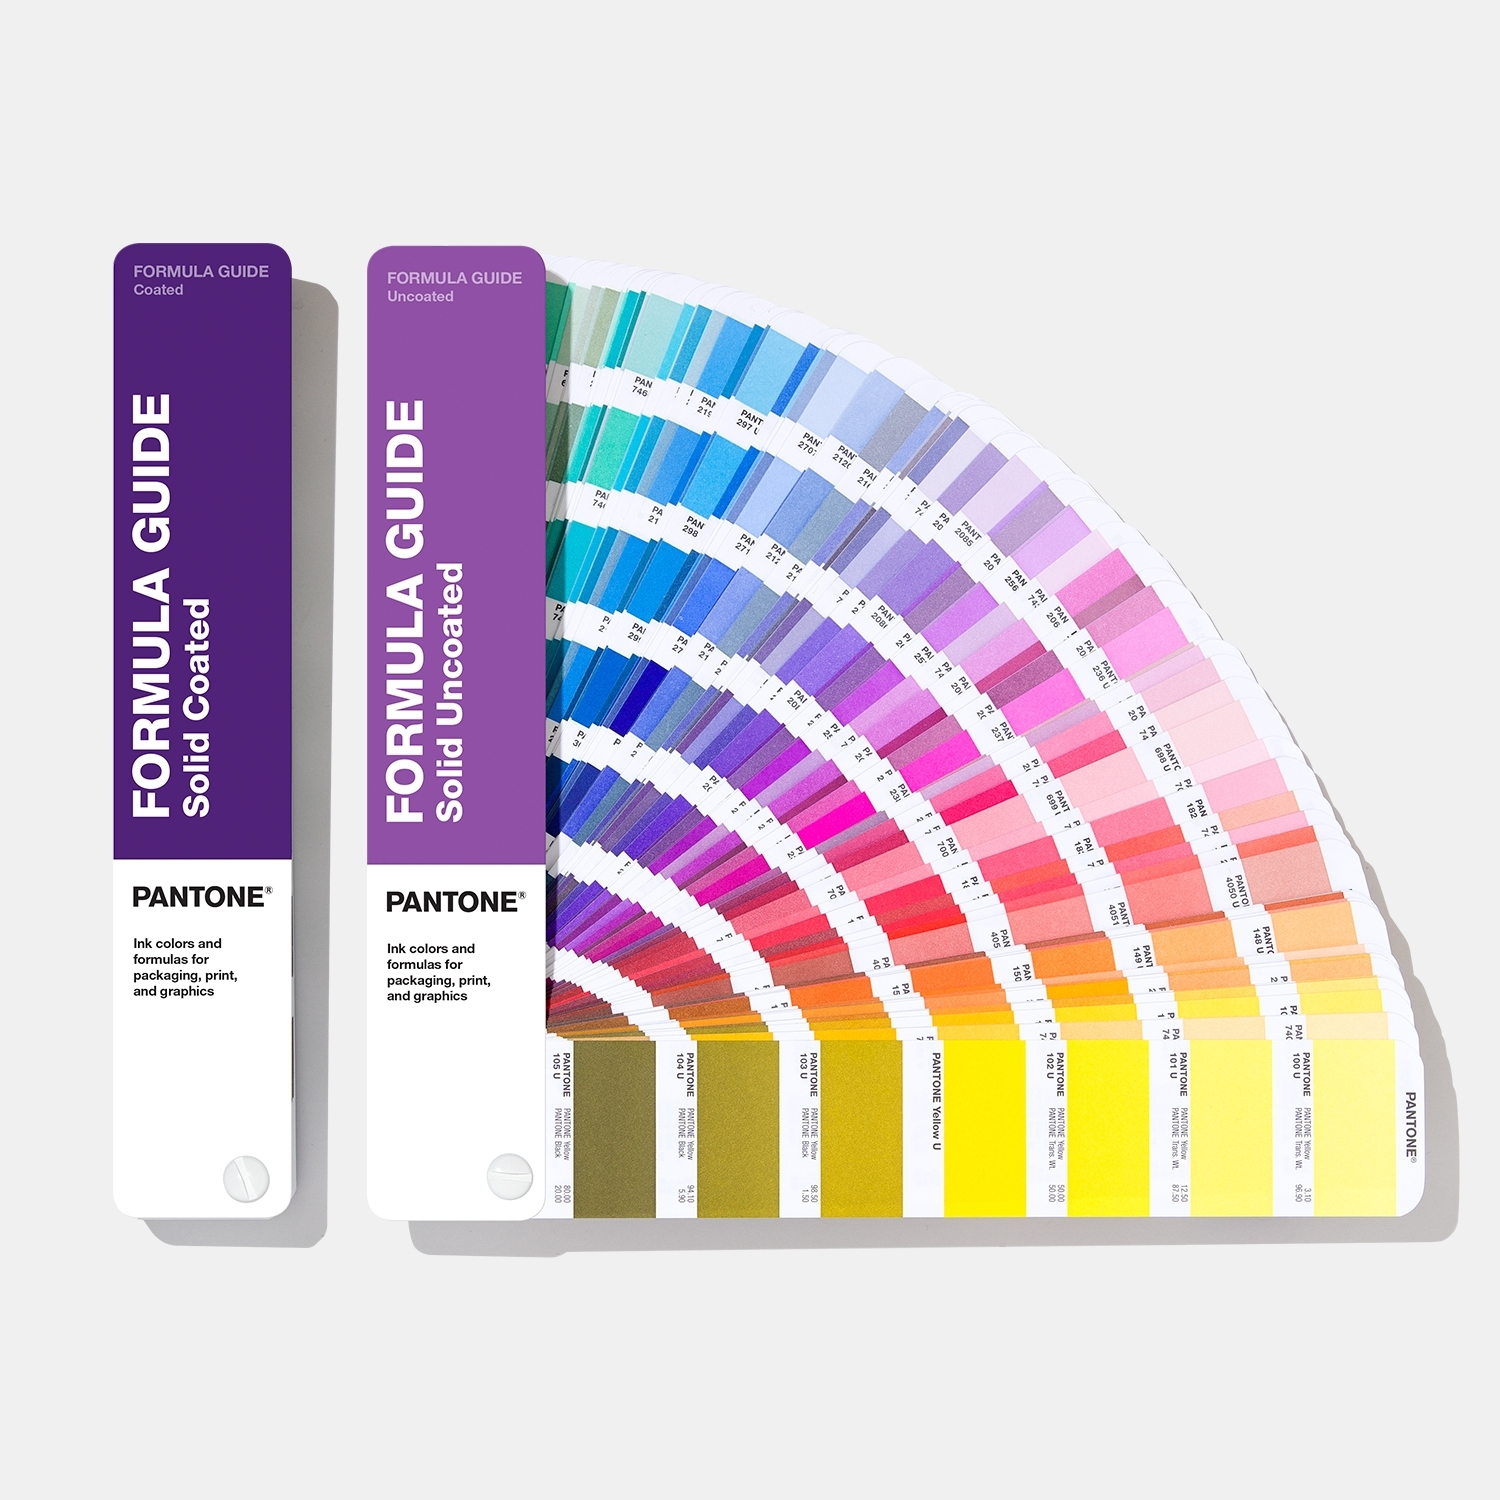 Pantone Formula Guide | Coated & Uncoated Visualize and communicate color for graphics and print - View 2